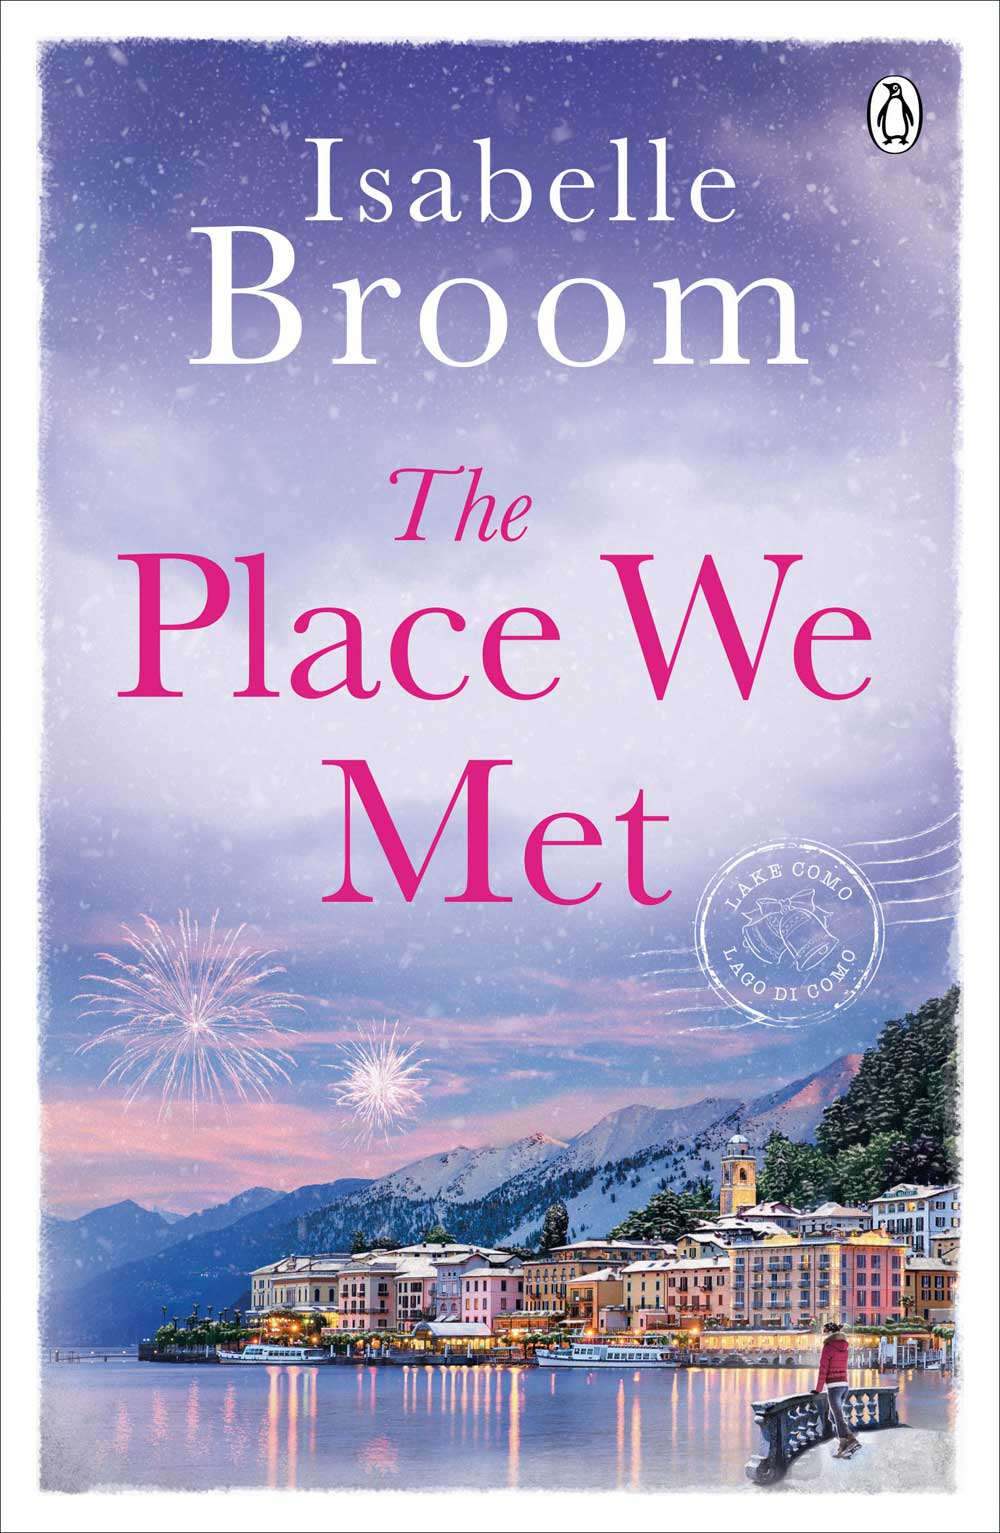 The Place We Met by Isabelle Broom